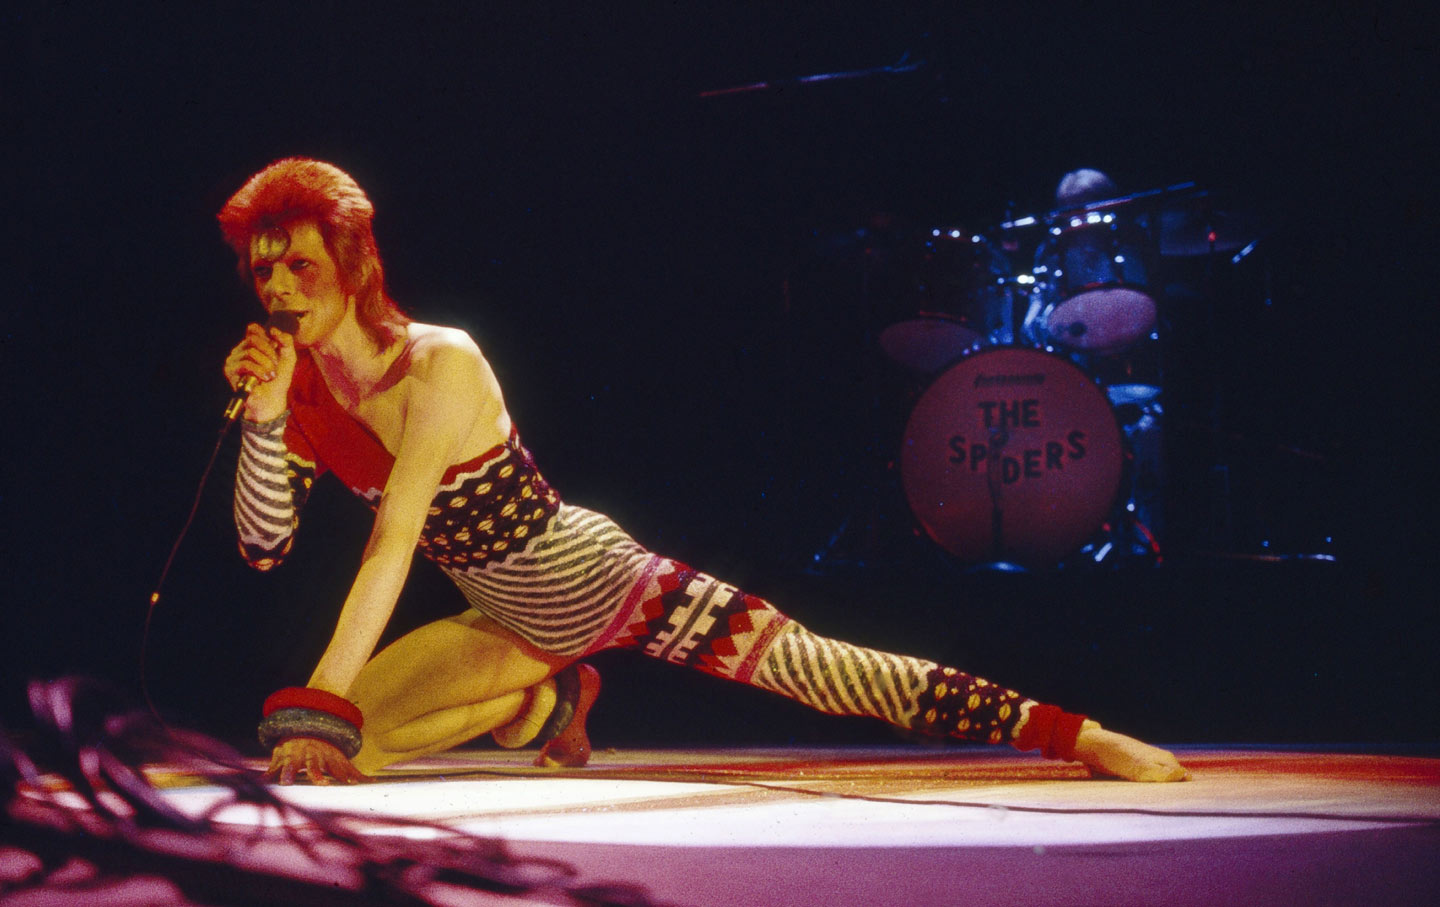 David Bowie at the Hammersmith Odeon, 1973 - Ziggy Stardust and the Spiders from Mars tour, photo via Associated Press.